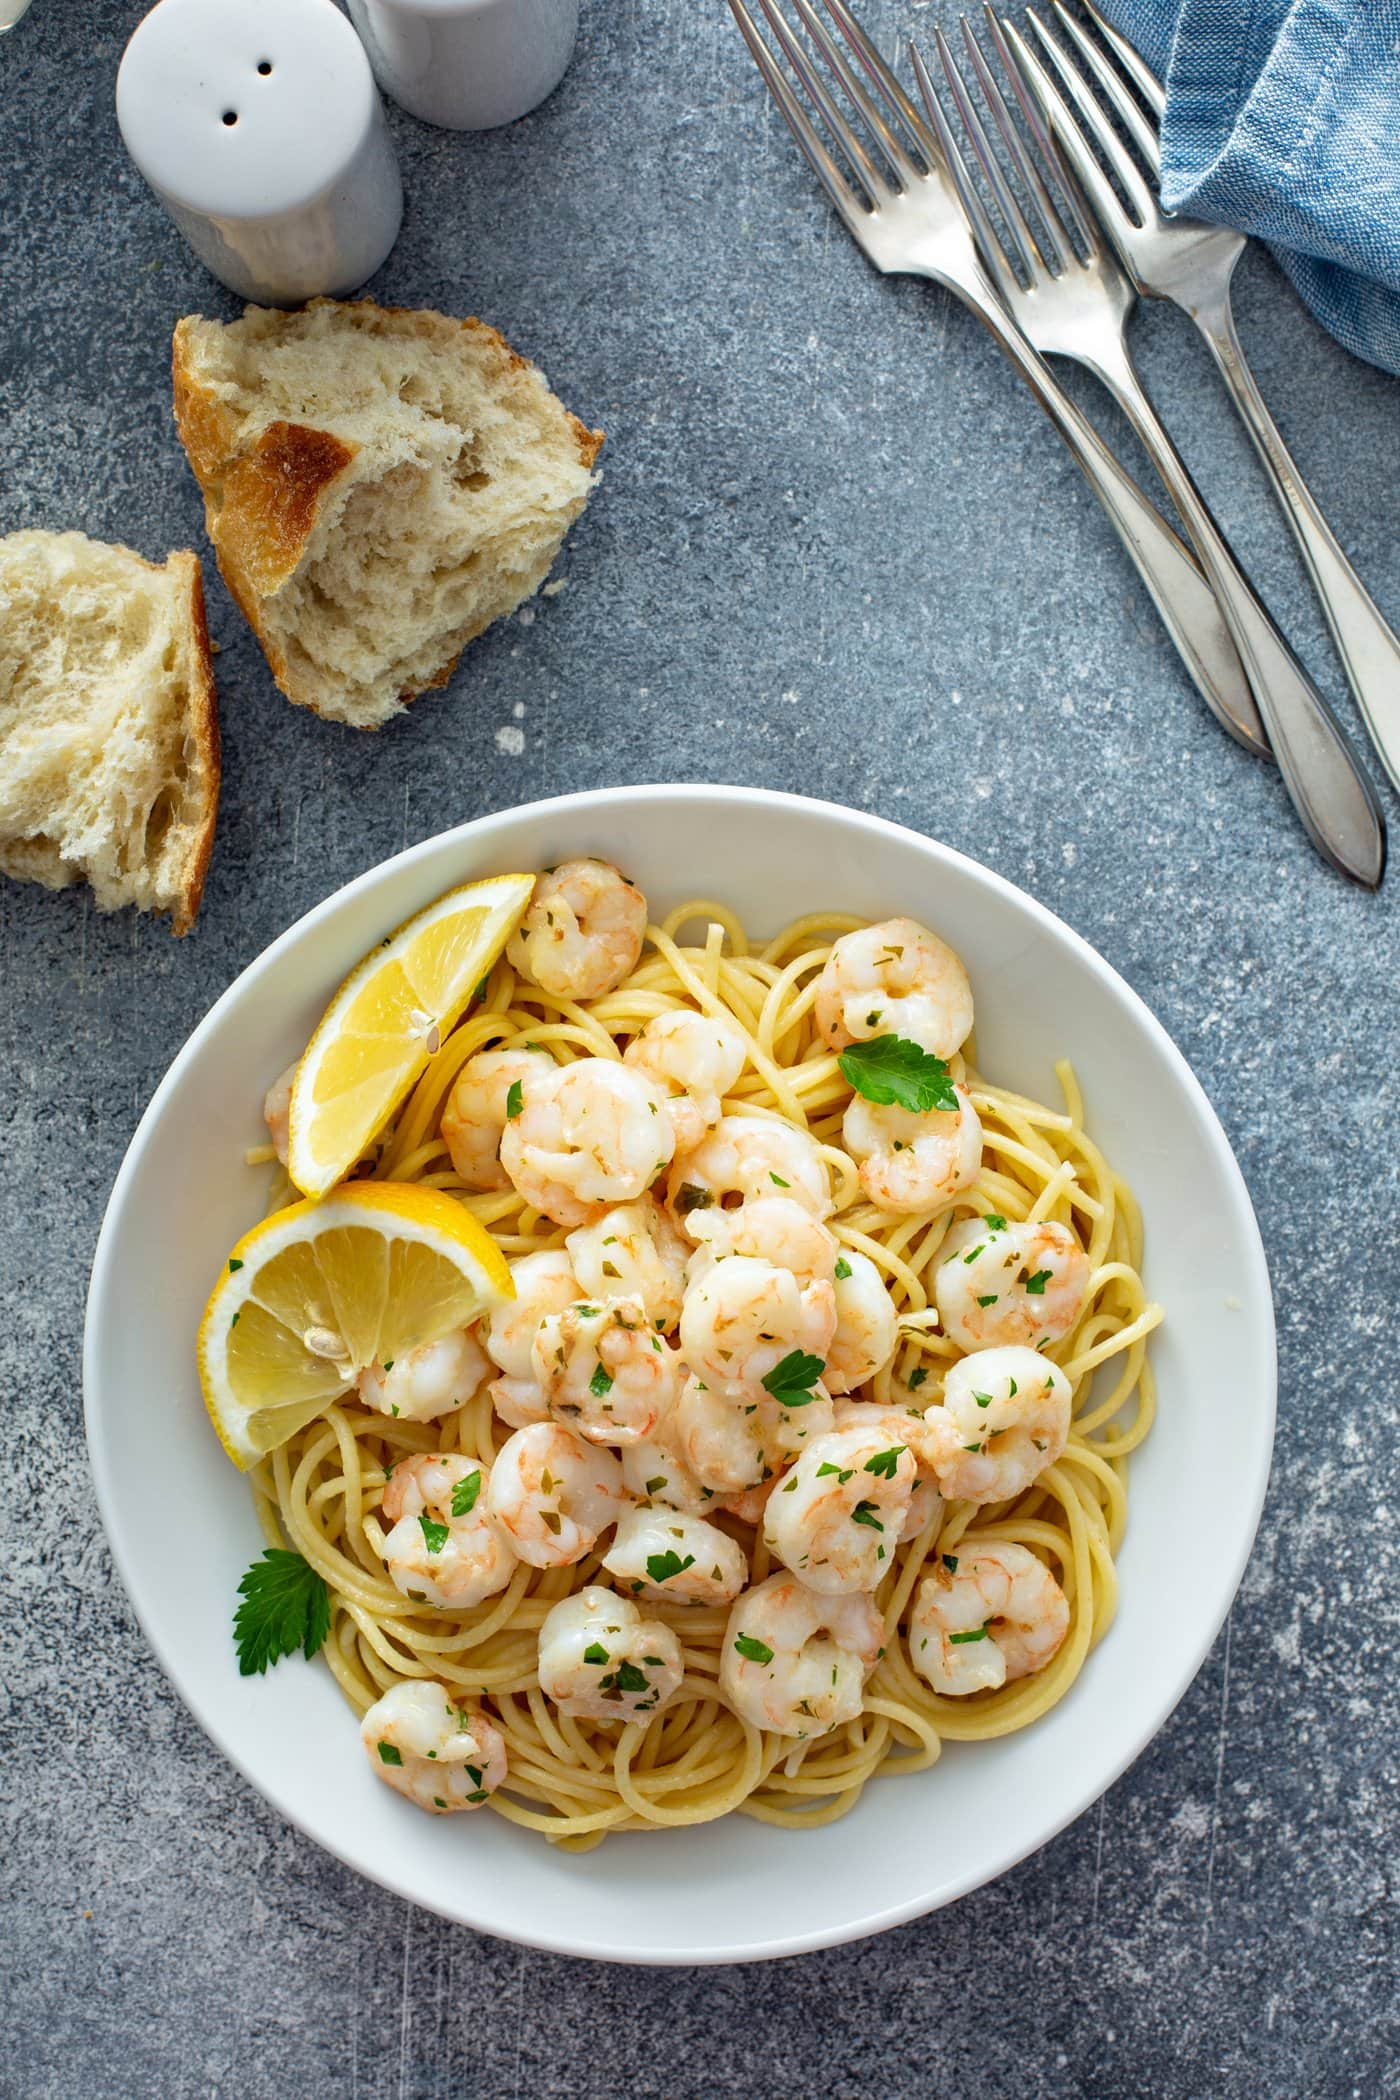 A bowl of lemon garlic shrimp over pasta. there are two lemon wedges on the edge of the bowl and the shrimp is sprinkled with fresh parsley. There are two pieces of torn bread and three forks in the background.